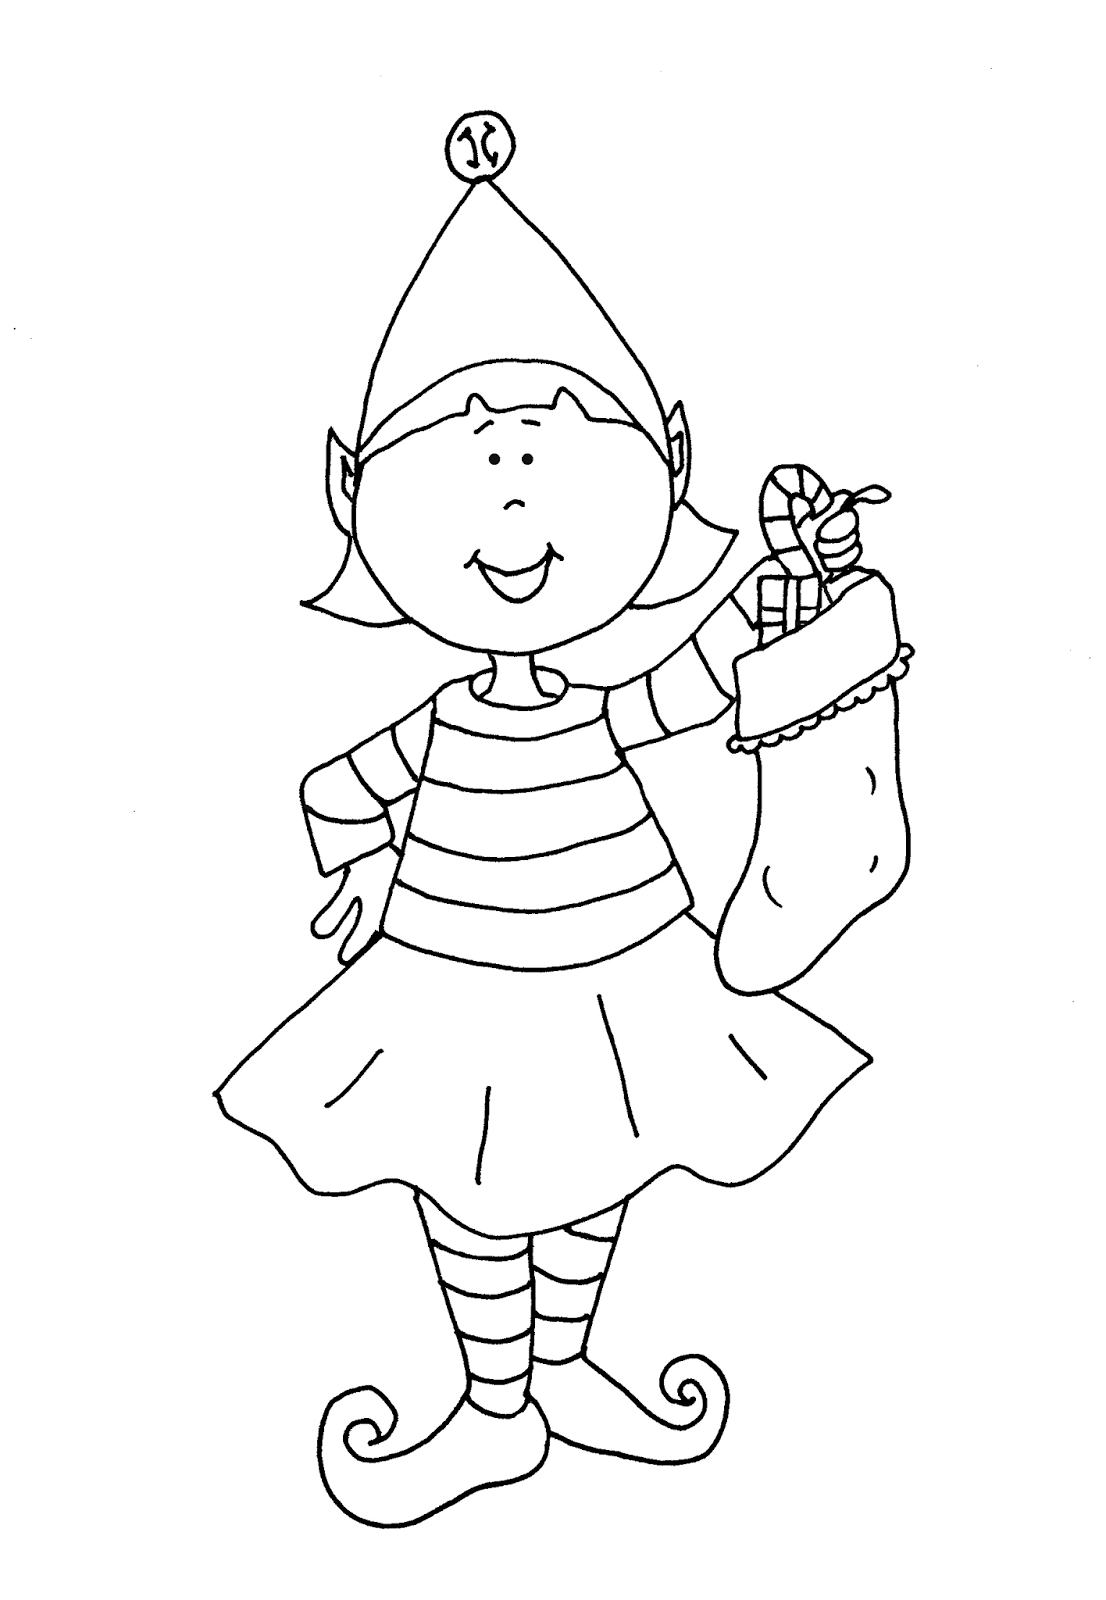 Pictures Christmas Elves Coloring Pages Christmas Coloring Pages Kidsdrawi Christmas Coloring Sheets Kids Printable Coloring Pages Christmas Coloring Pages